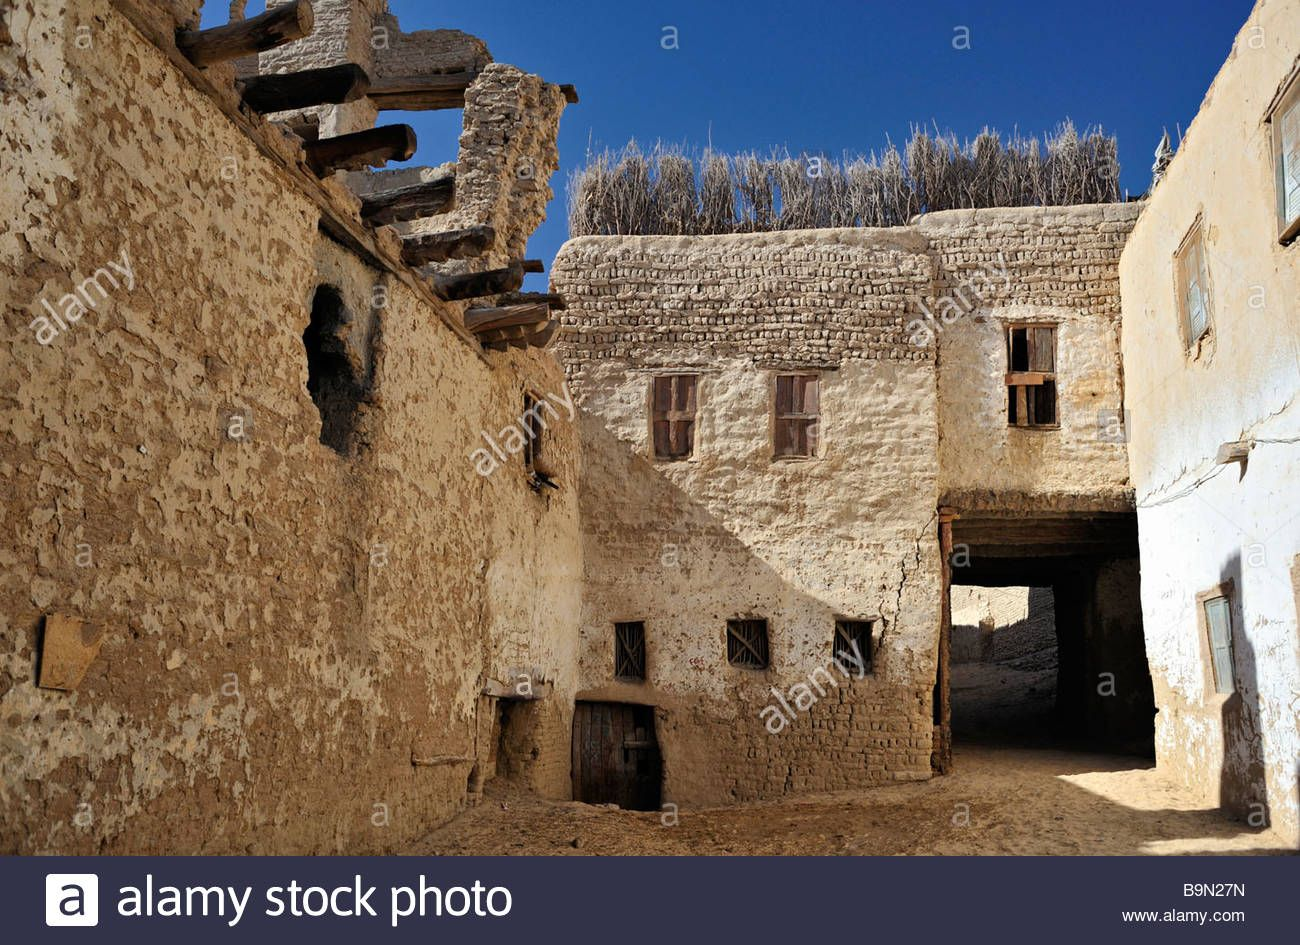 Old house in ancient part of El Qsar in western desert